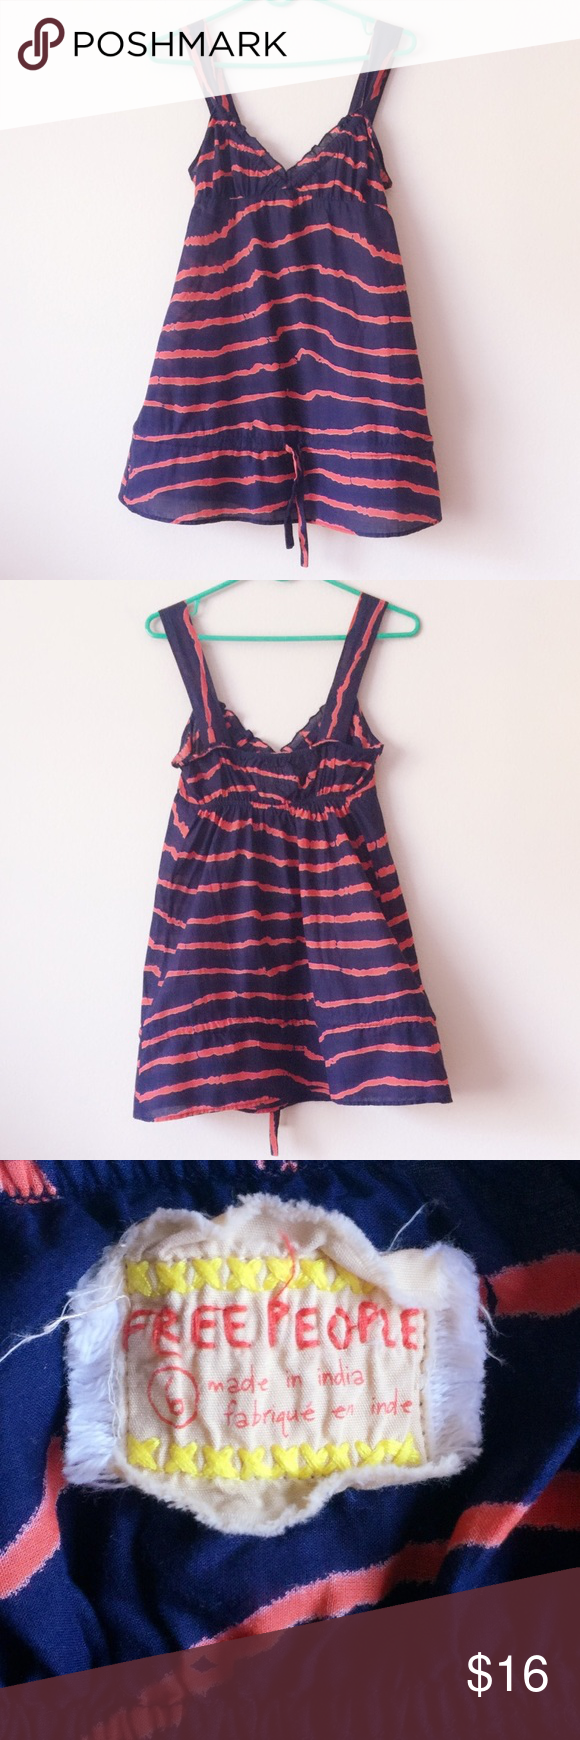 ✨FREE PEOPLE SLEEVELESS STRIPE Made in India, size 6 in great condition no rips no damage. 100% cotton Free People Tops Blouses